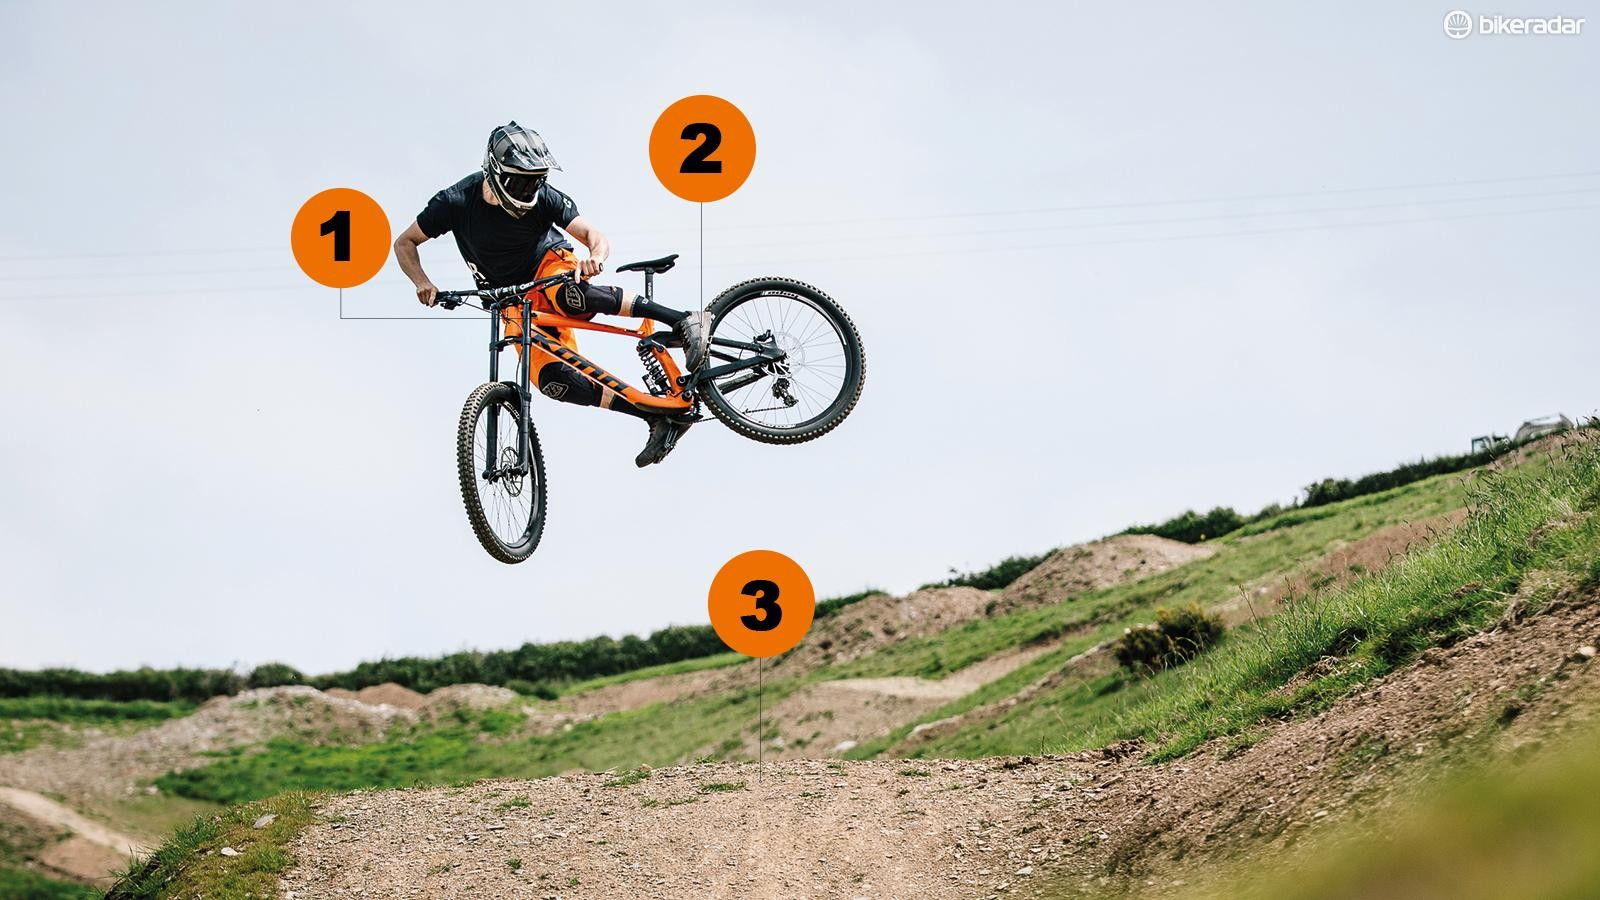 whip-your-mtb-02-1531404773641-1a45aoycdtjq2-3dbfc03